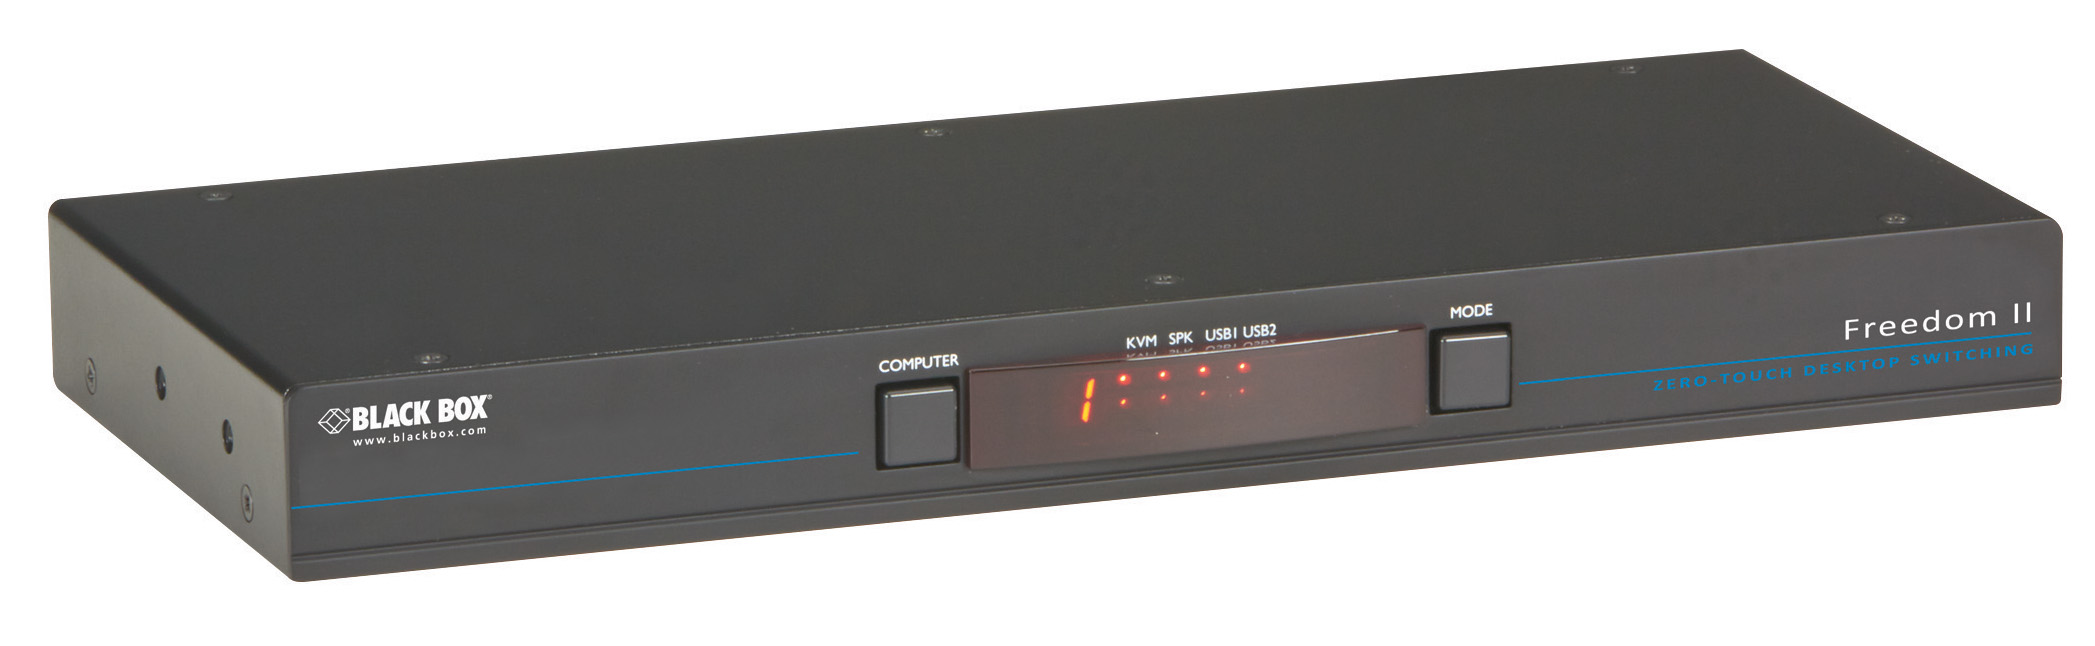 Freedom Ii Kvm Switch I Black Box Network Services Bouncless With Ne555 Additional Product Image